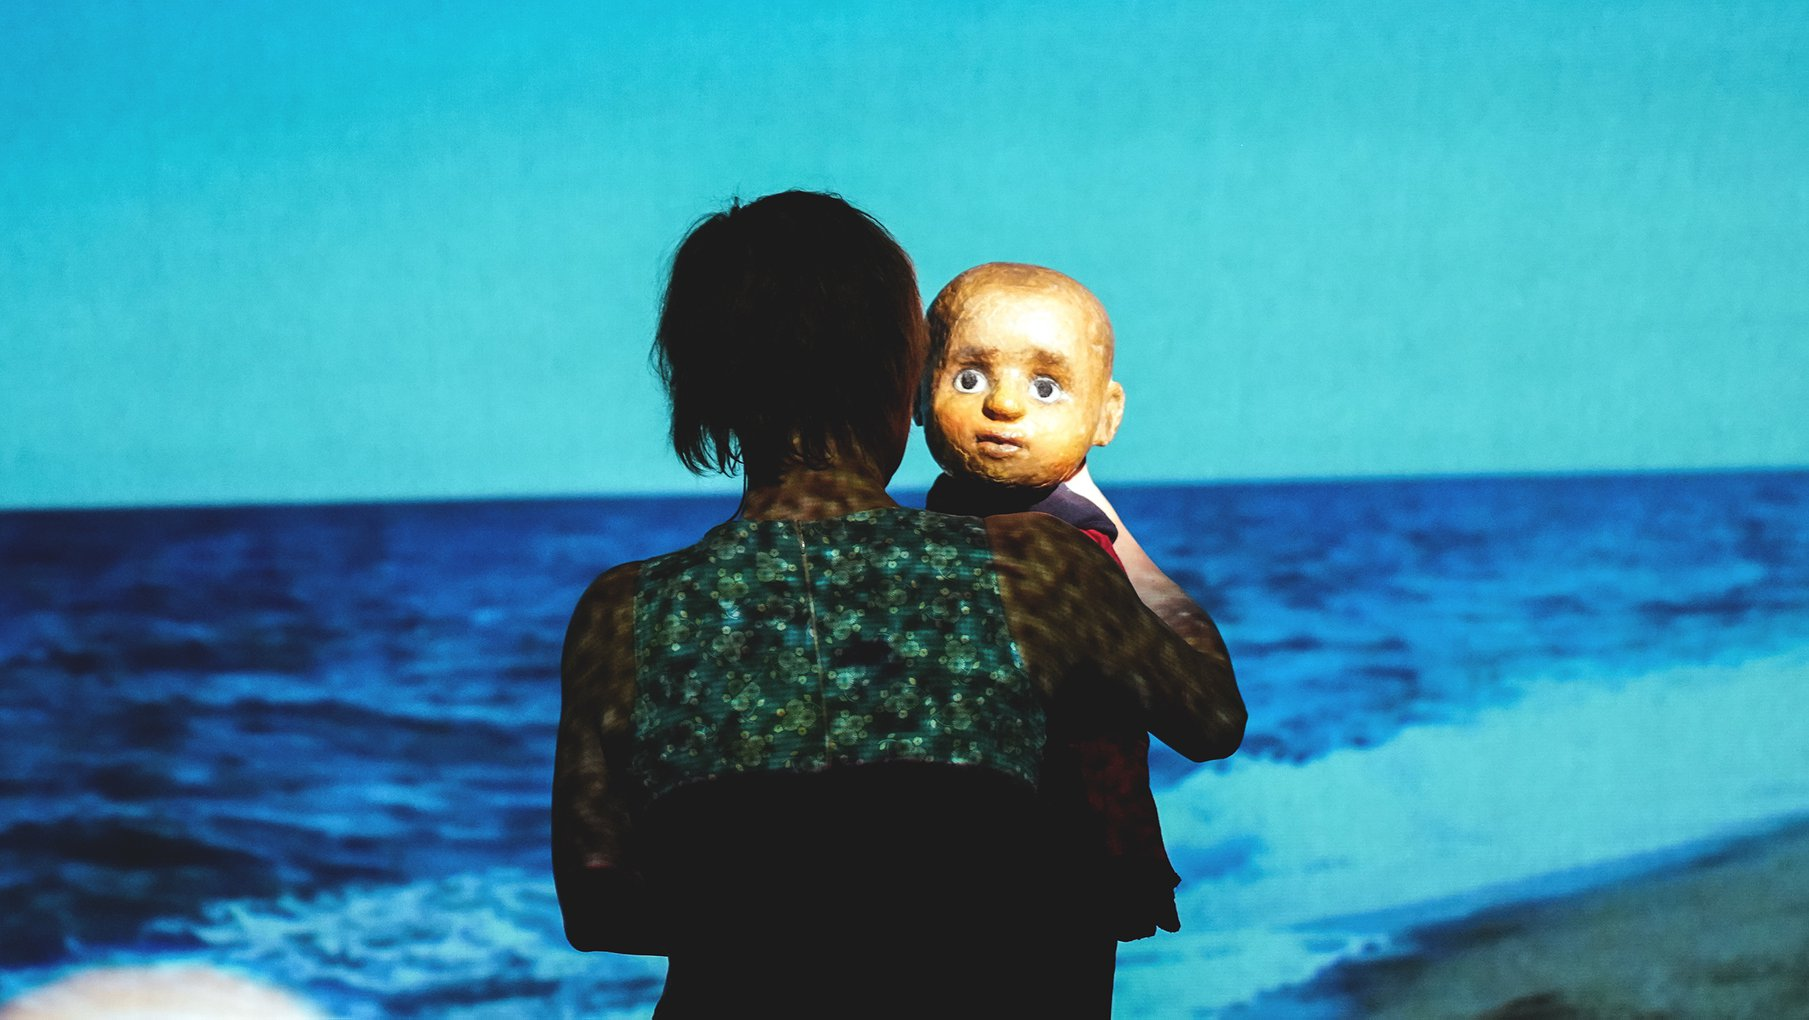 projected image of a beach with a woman with her back to the audience holding a puppet of a little boy looking straight into the camera